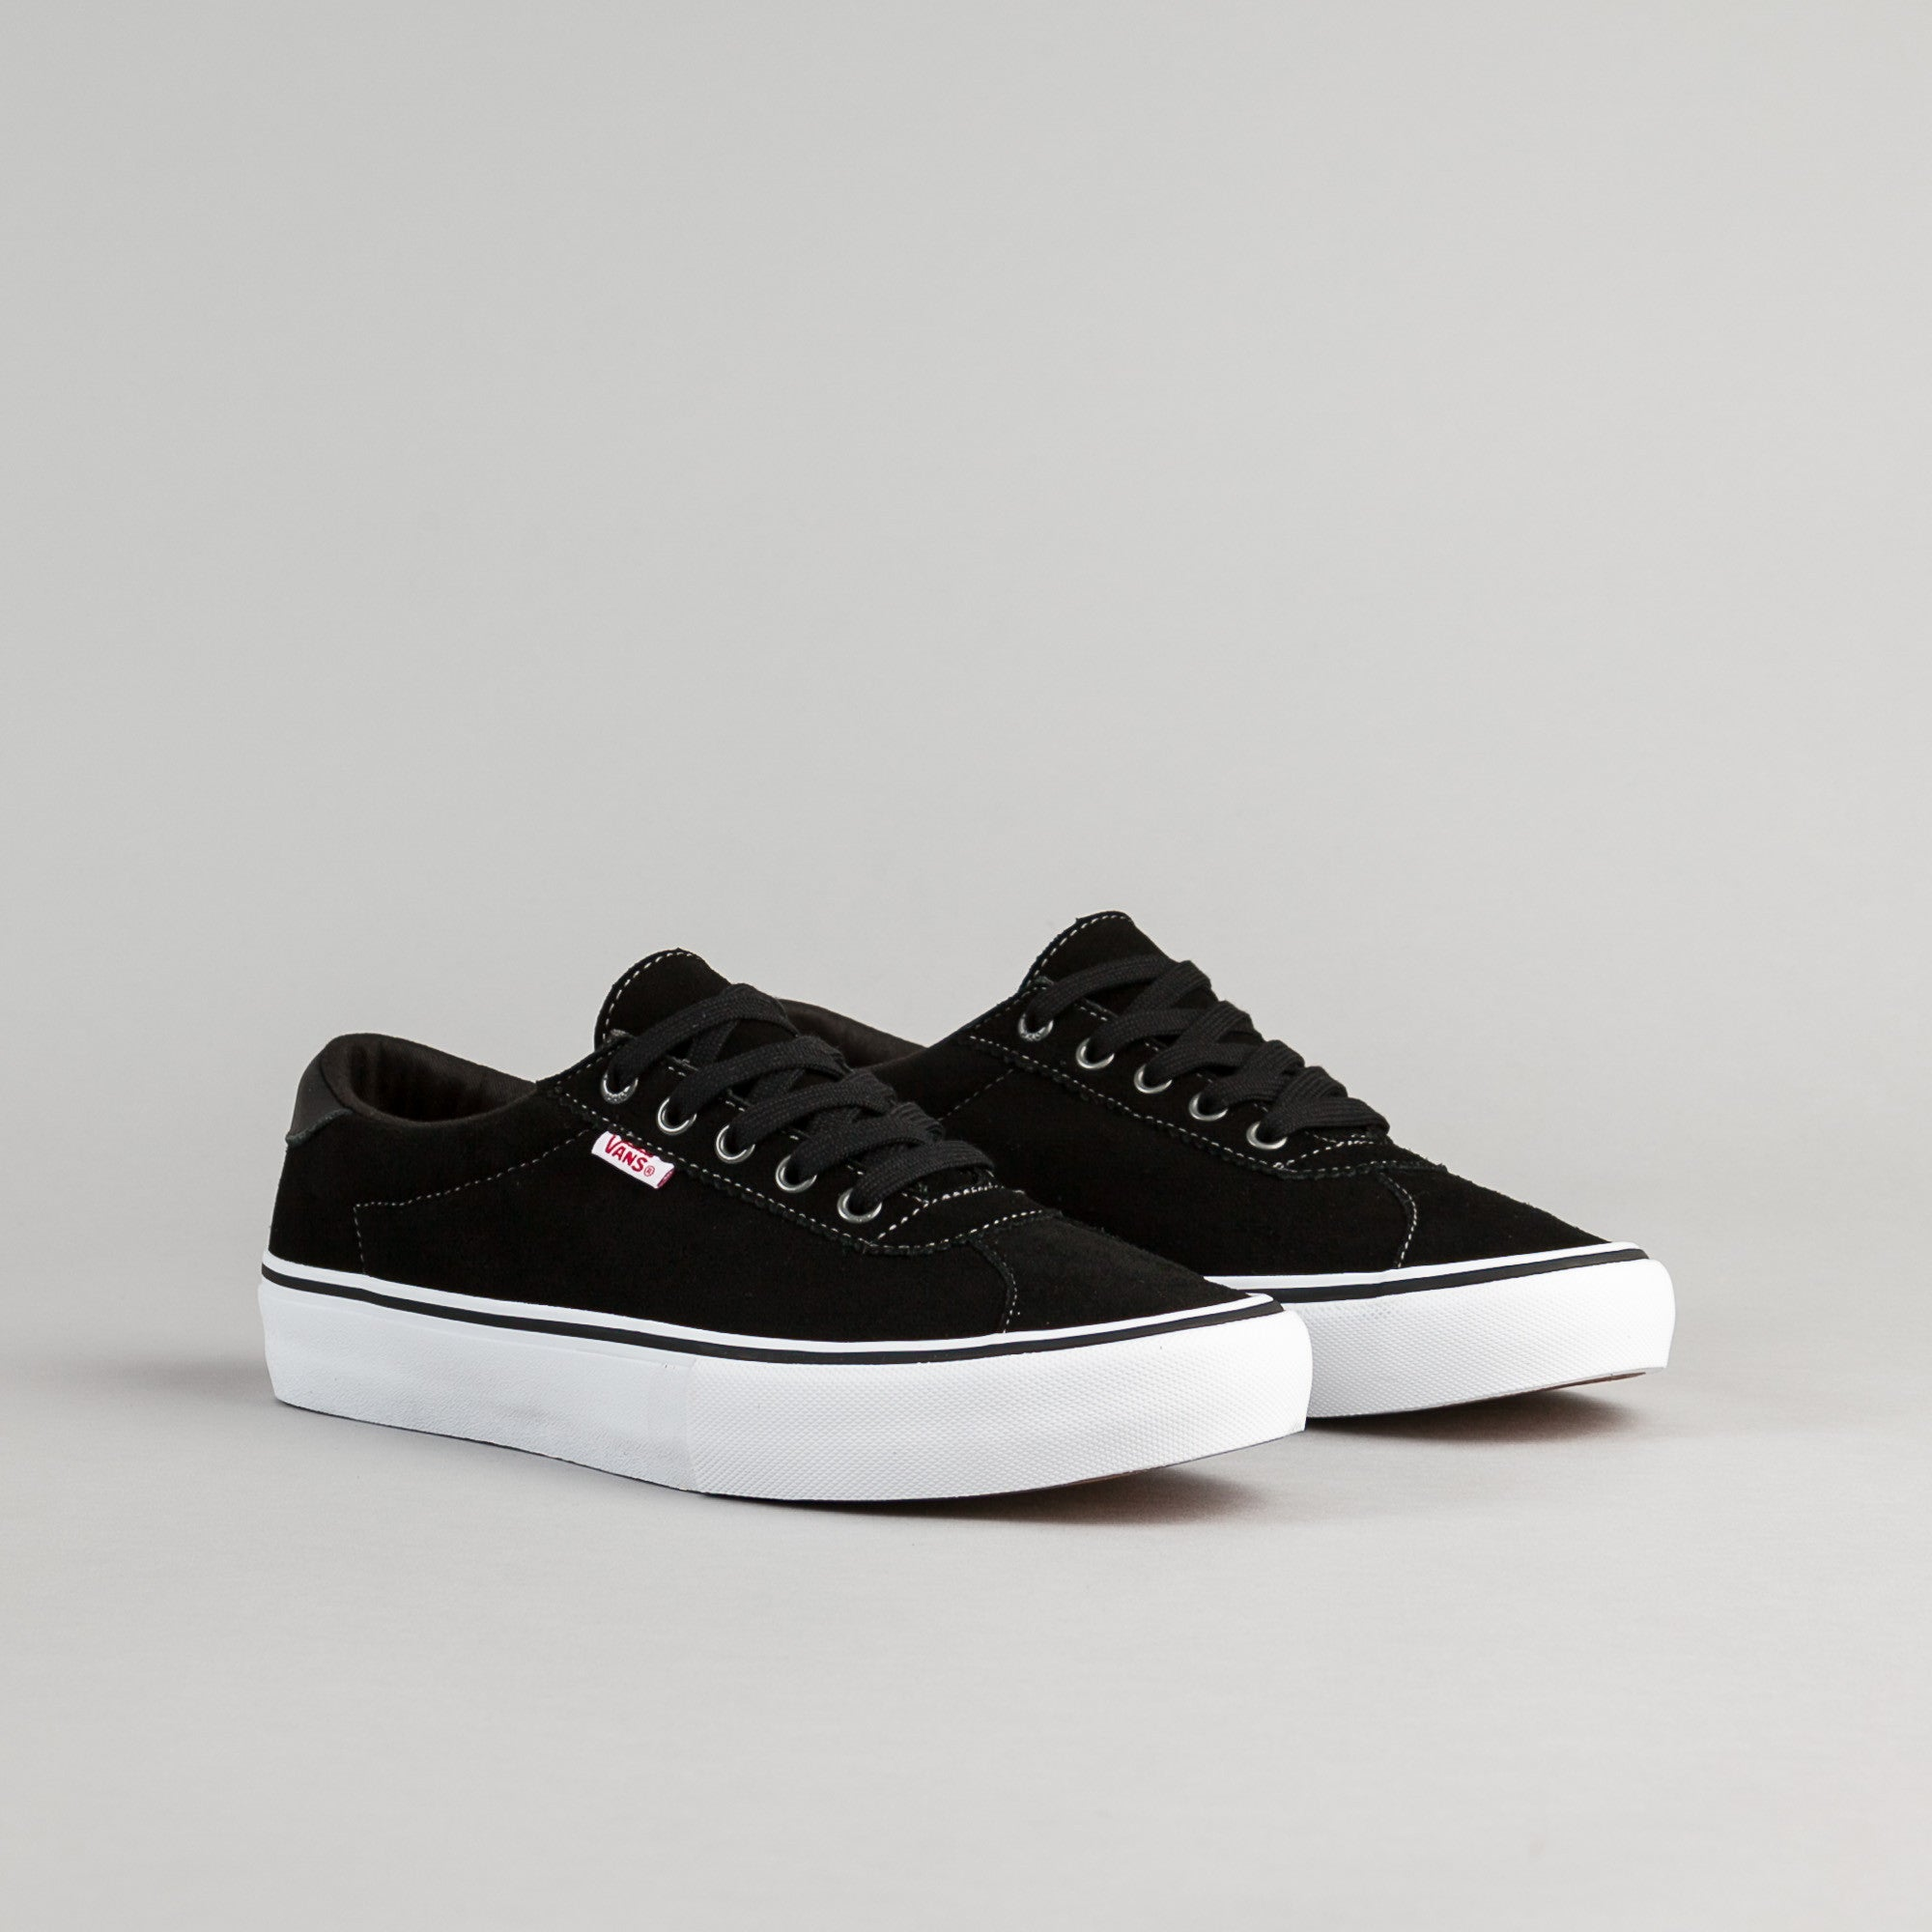 Vans Epoch Pro Shoes - Black / White